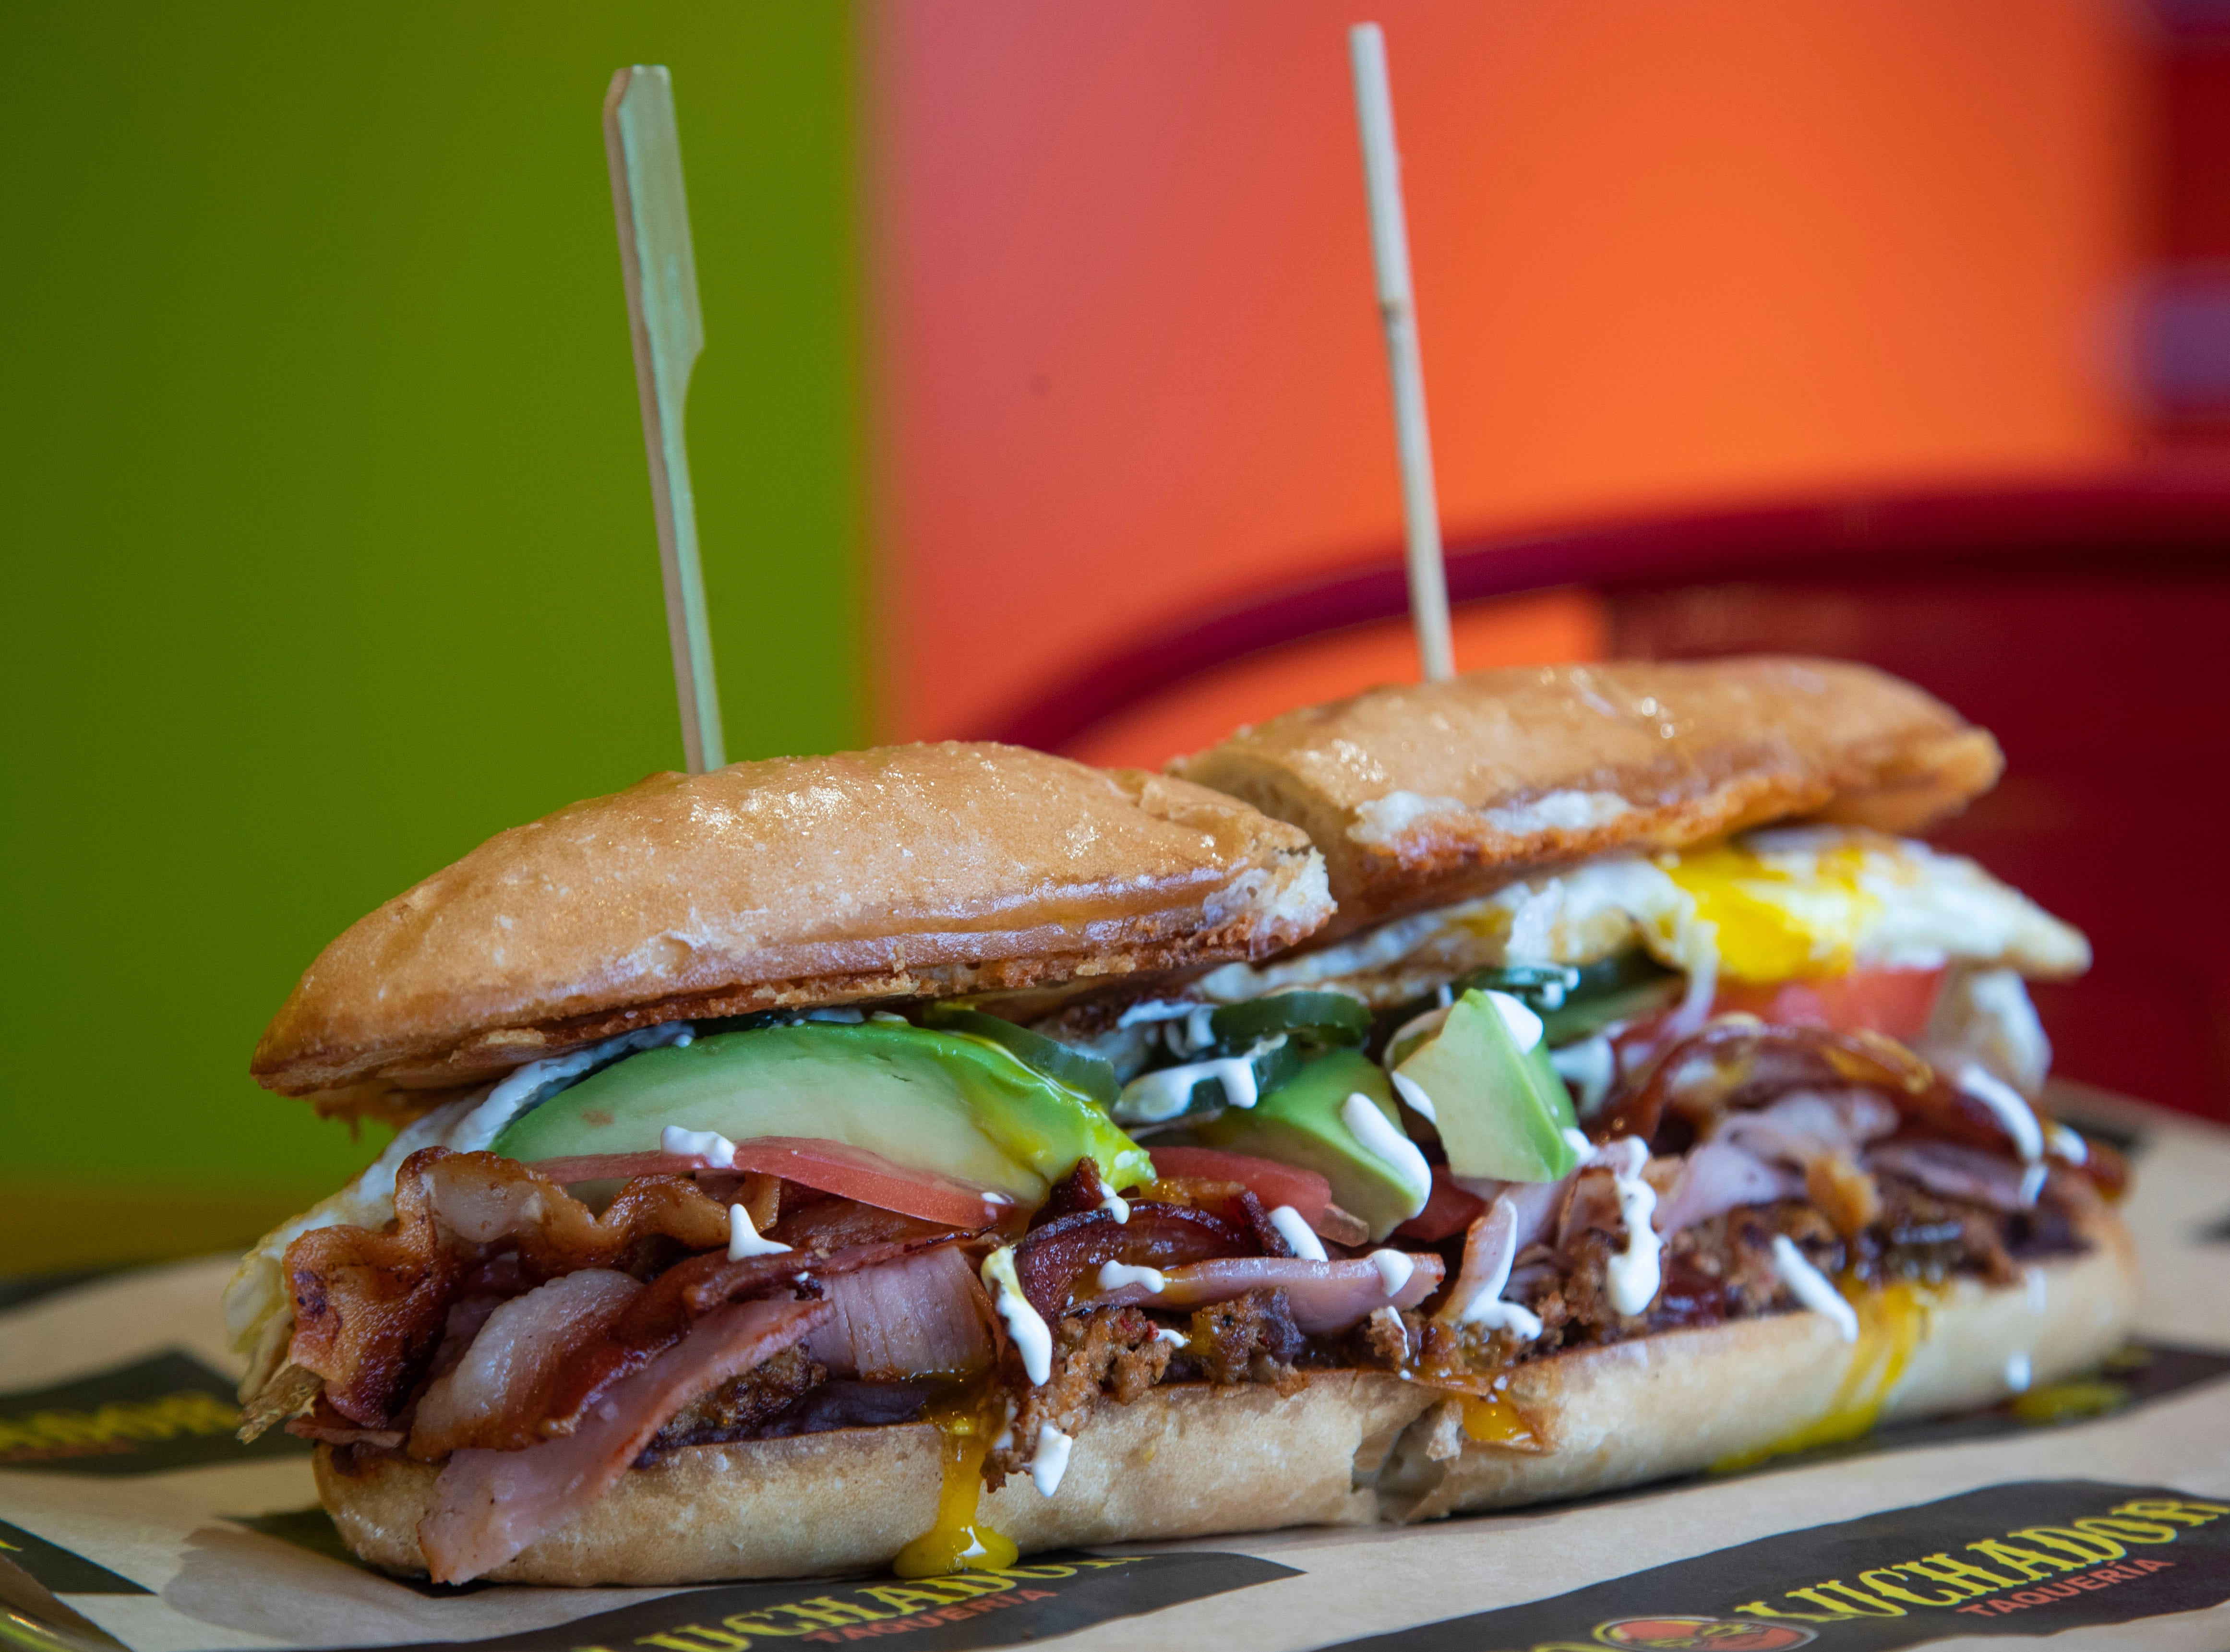 The Deayuno from Taco Luchador has bacon, Mexican chorizo, smoked ham with a fried egg.